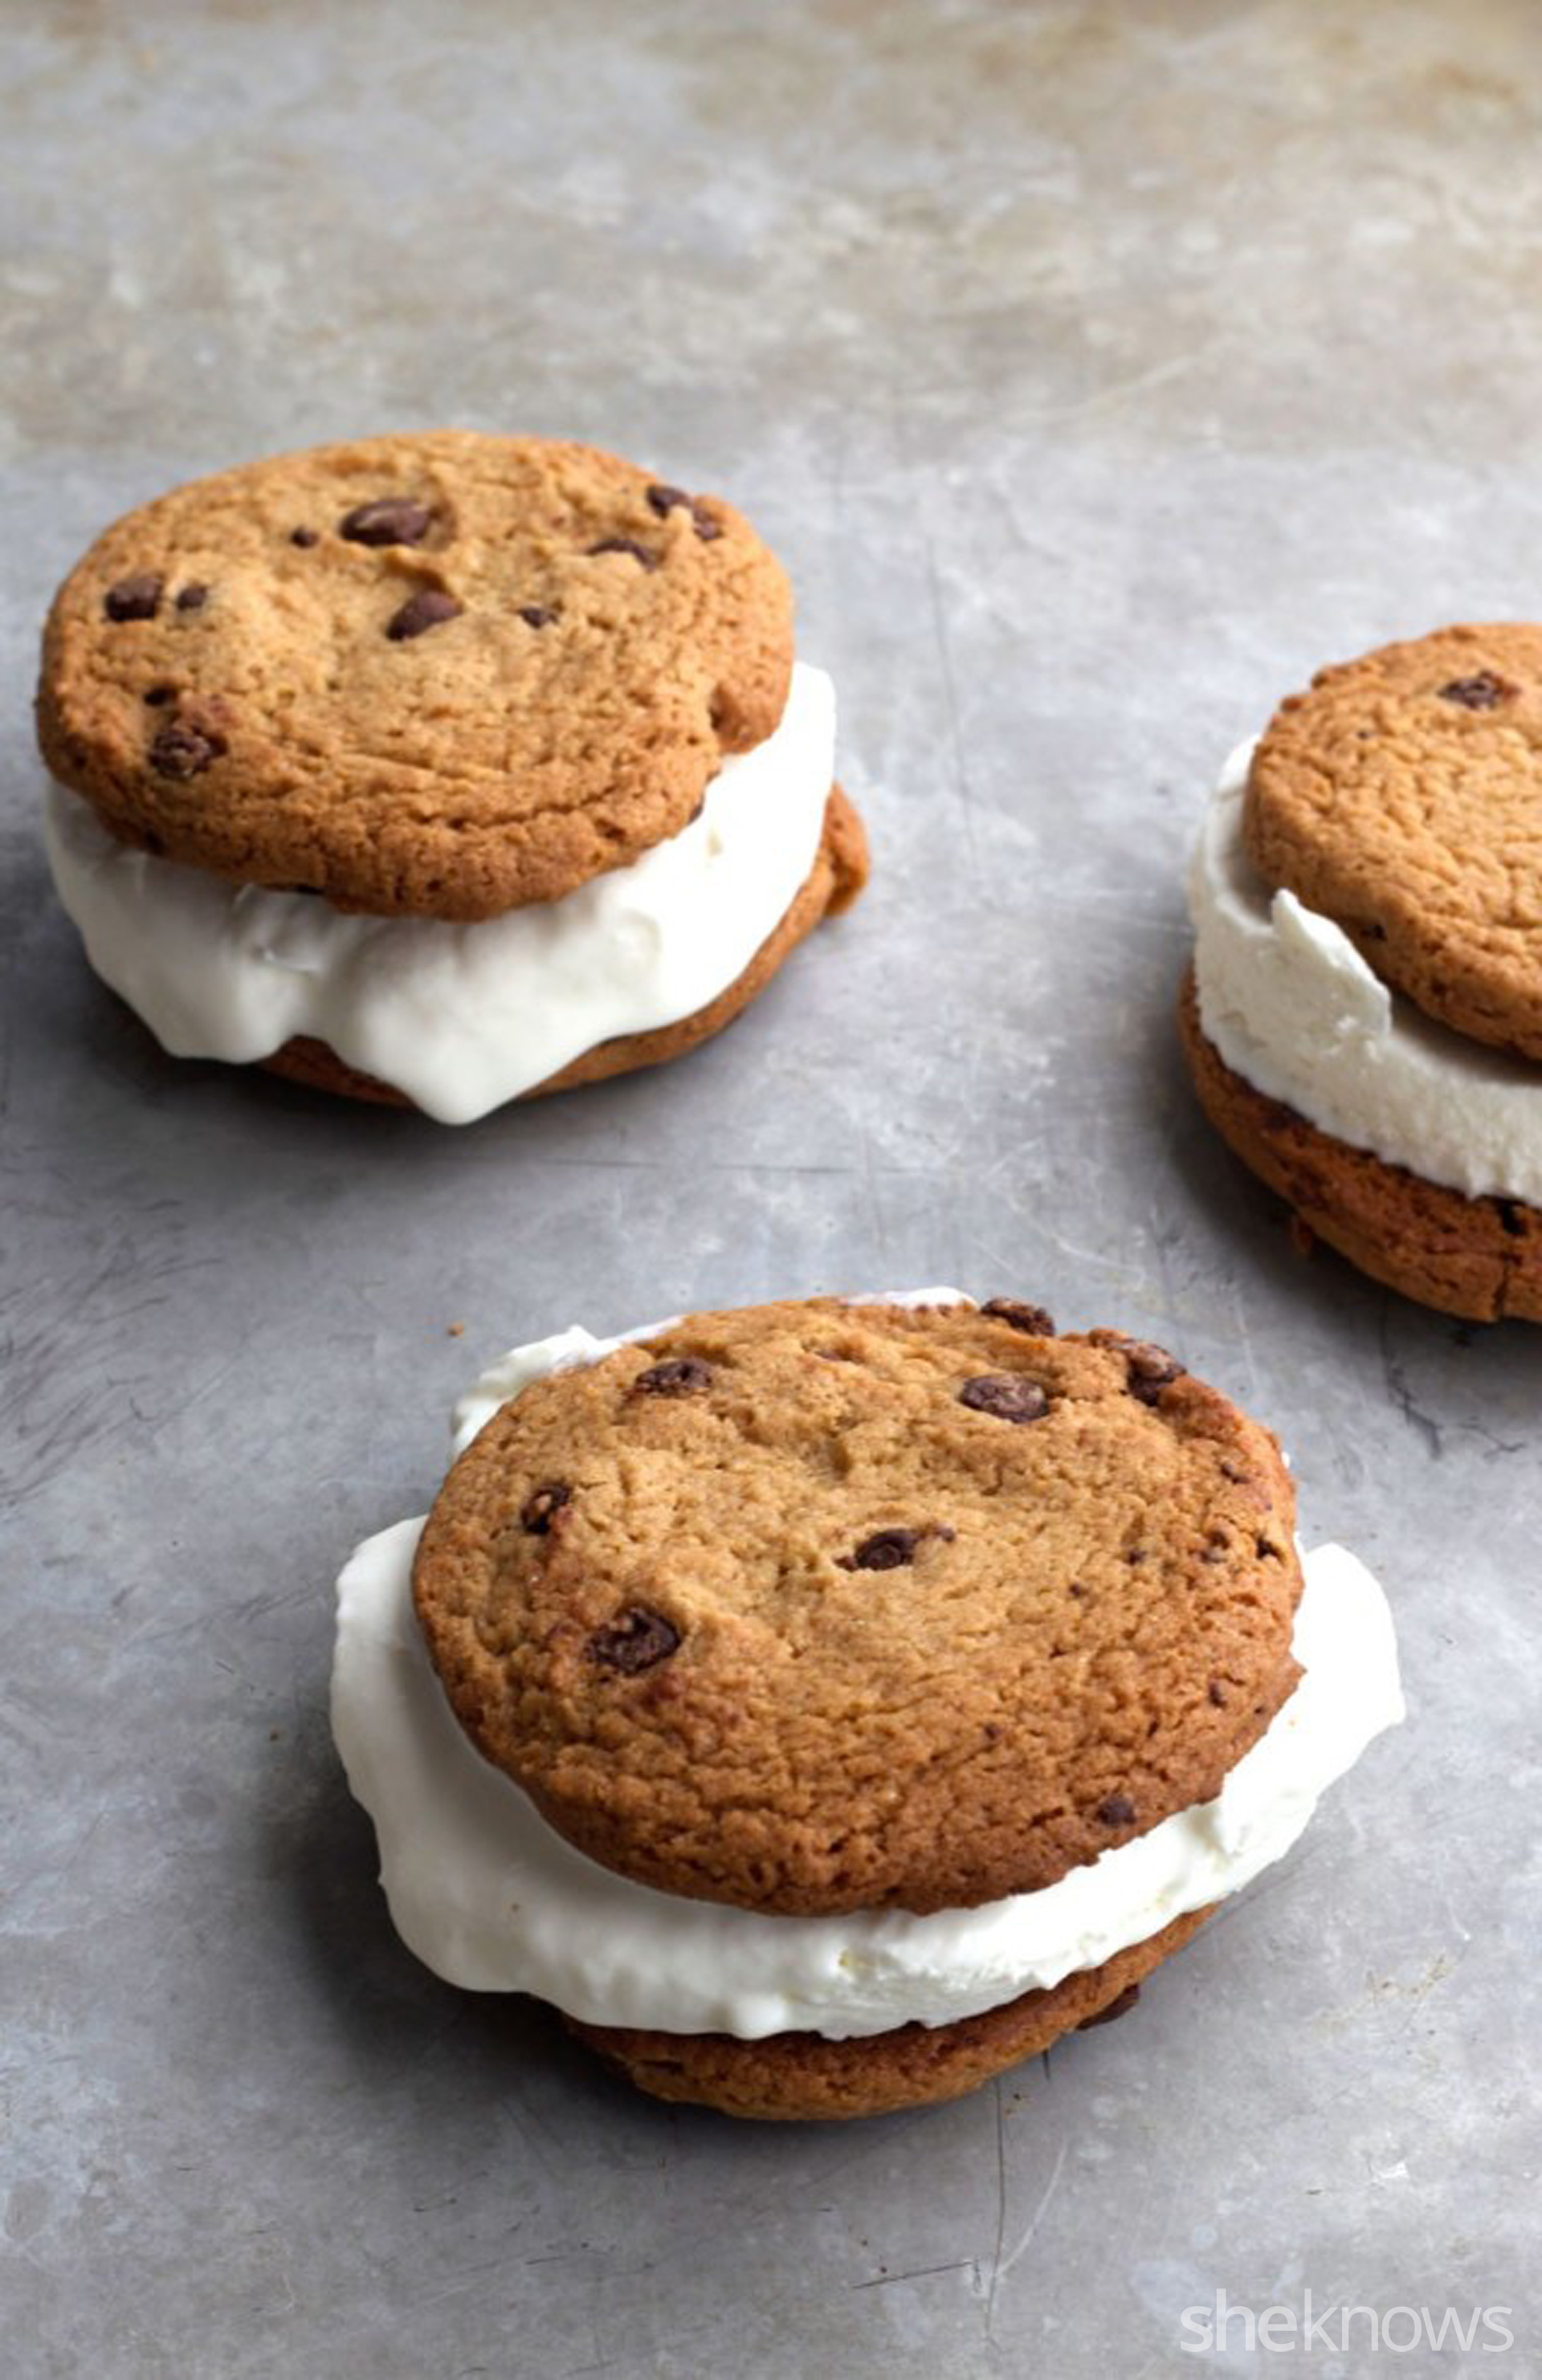 Homemade ice cream cookie sandwich easy peasy meals a tasty homemade ice cream cookie sandwich using fiber one chocolate chip cookies and a homemade soft serve ice cream ccuart Choice Image